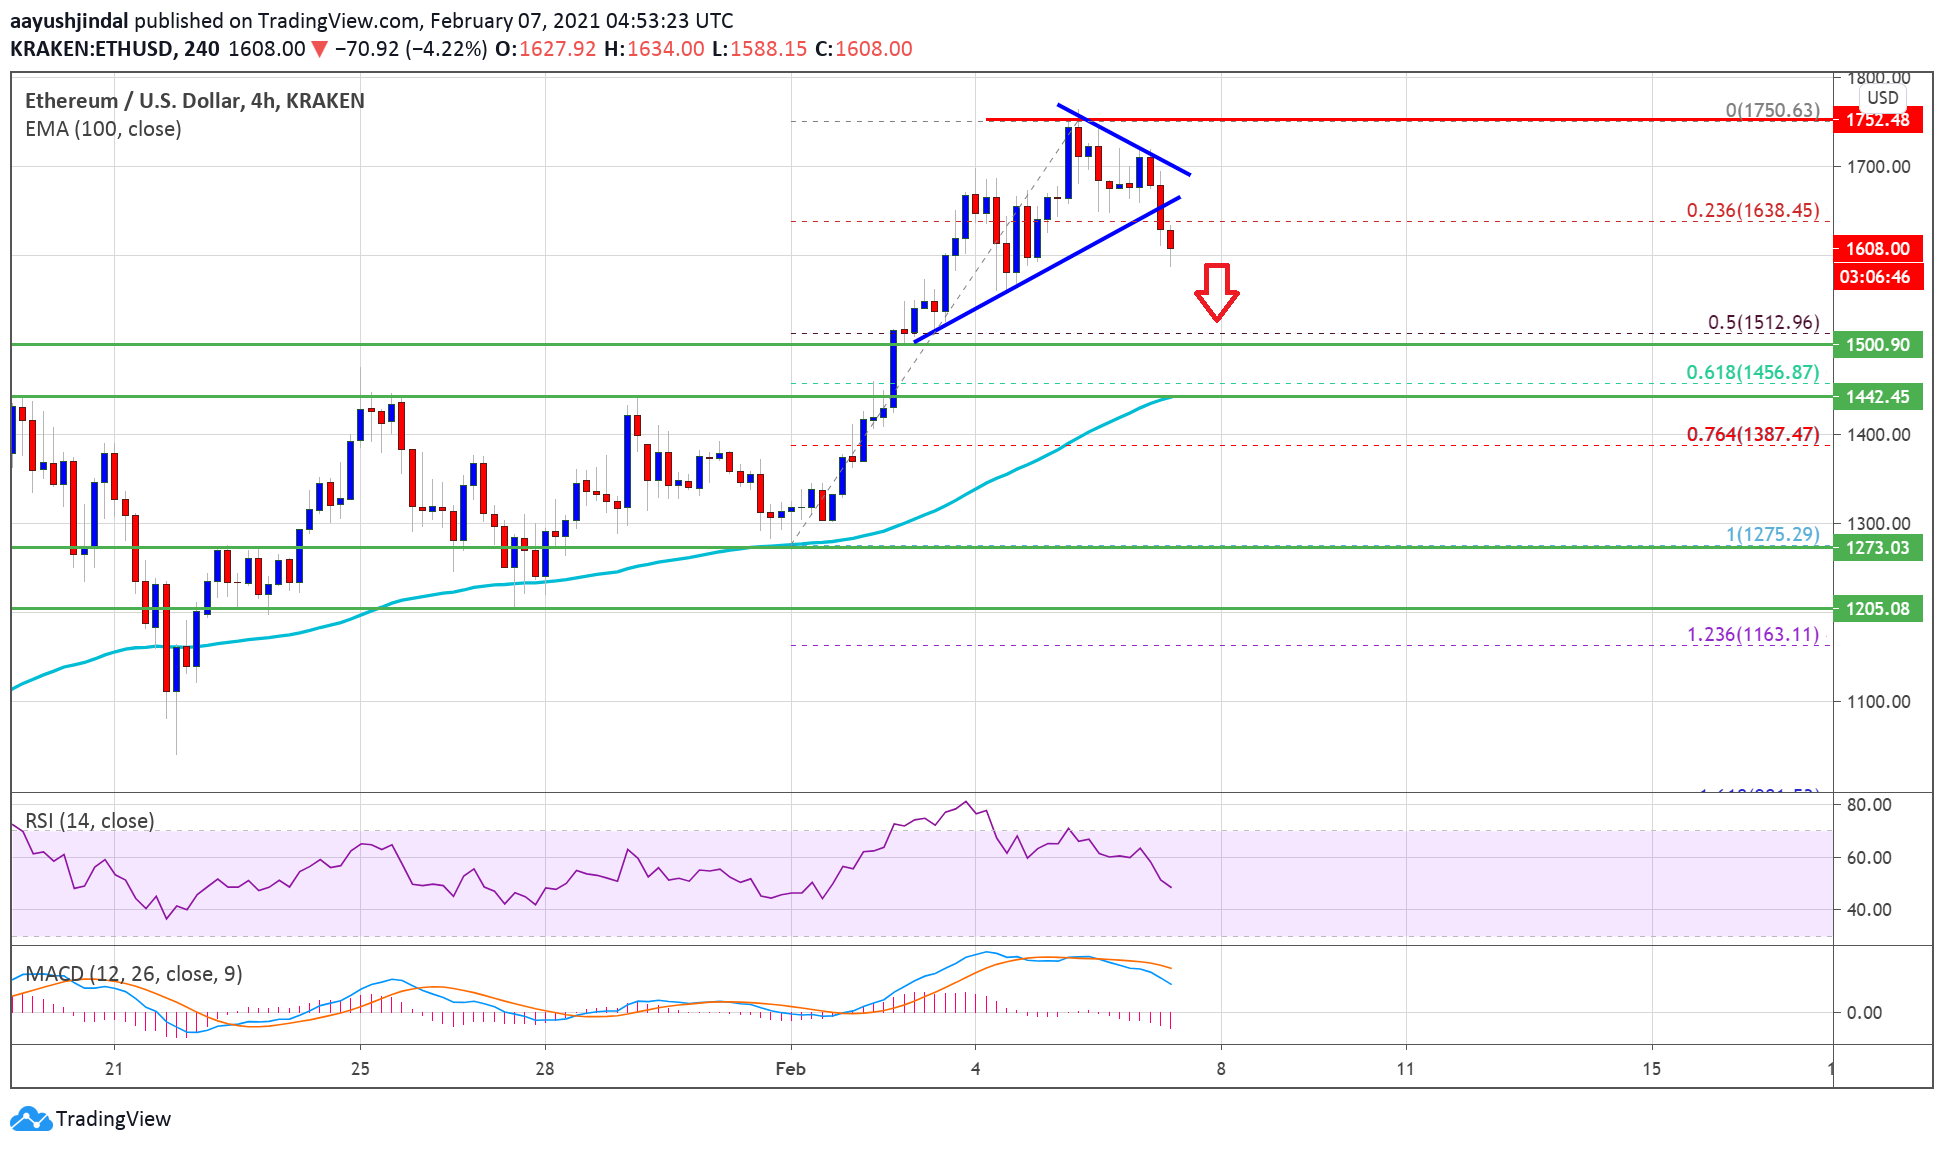 Ethereum Starts Corrective Decrease, Why ETH Remains Attractive Near $1,500